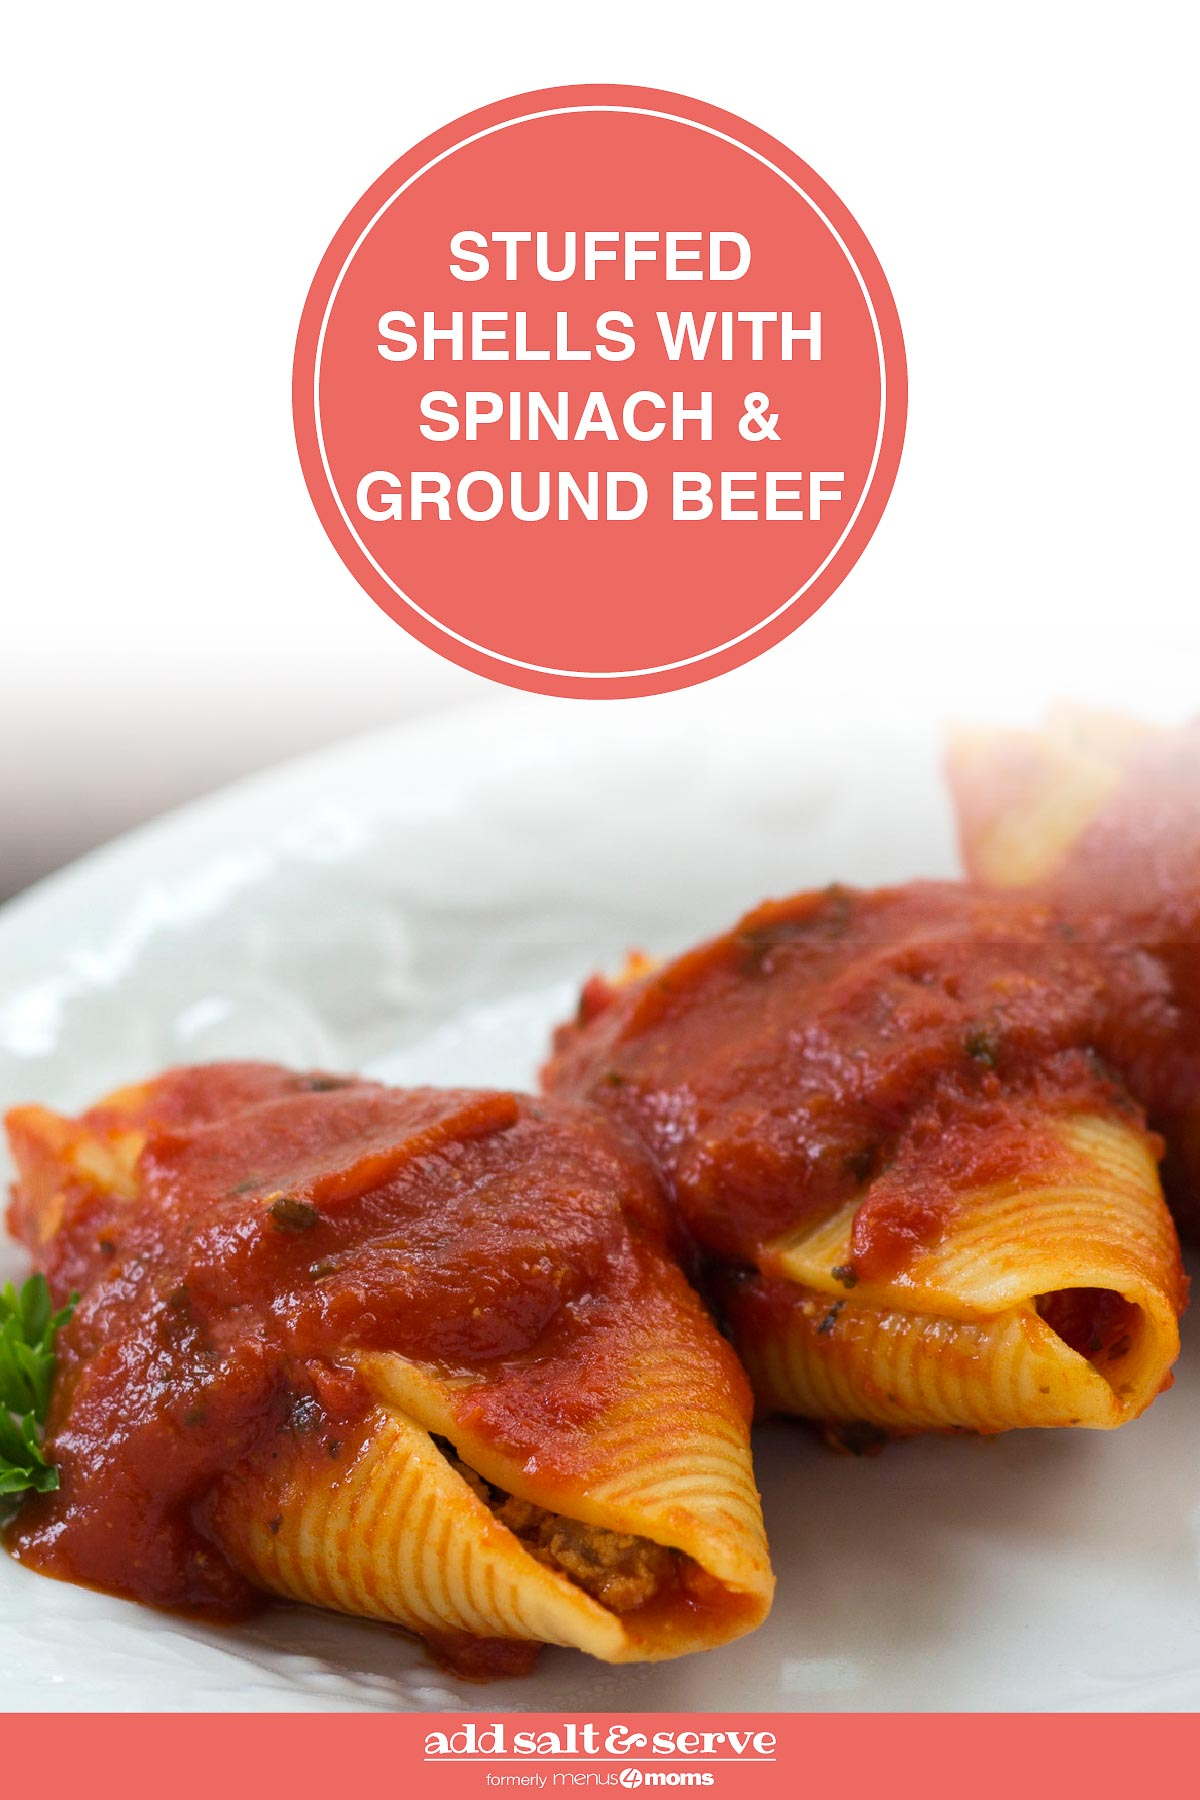 White plate with 3 jumbo pasta shells stuffed with beef and covered with spaghetti sauce, garnished with parsley; text Stuffed Shells with Spinach & Ground Beef - Add Salt & Serve logo